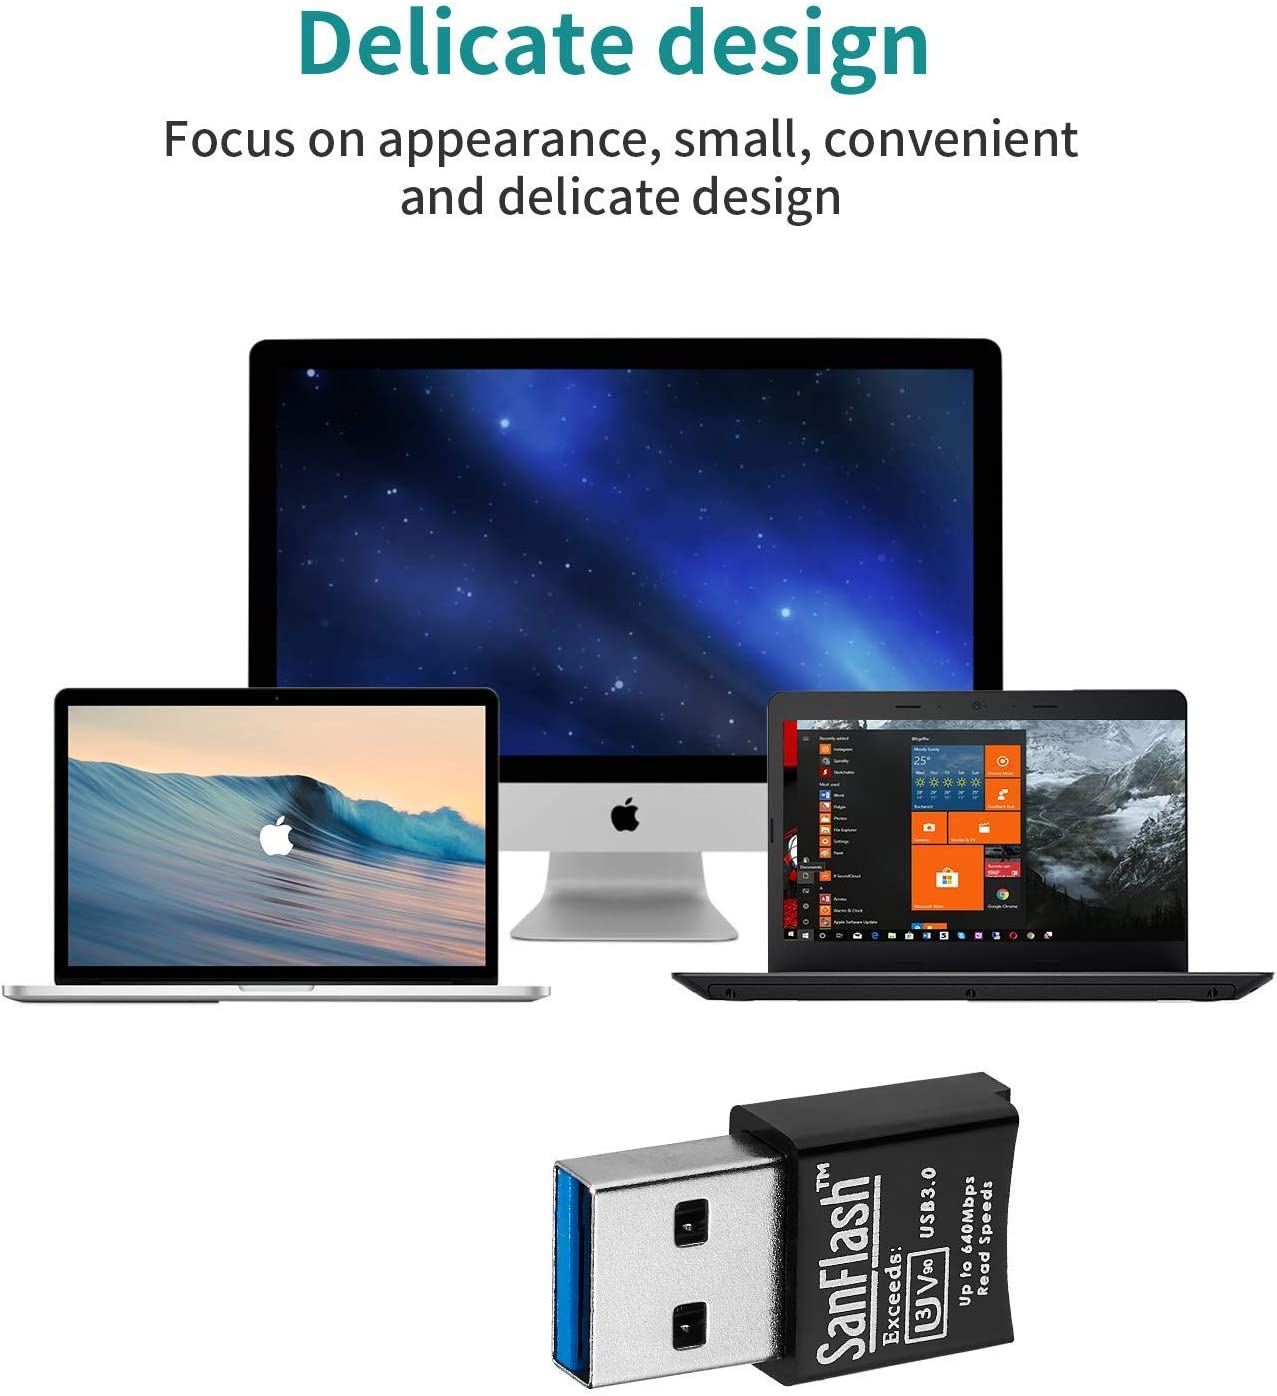 SanFlash PRO USB 3.0 Card Reader Works for Lenovo A850 Adapter to Directly Read at 5Gbps Your MicroSDHC MicroSDXC Cards